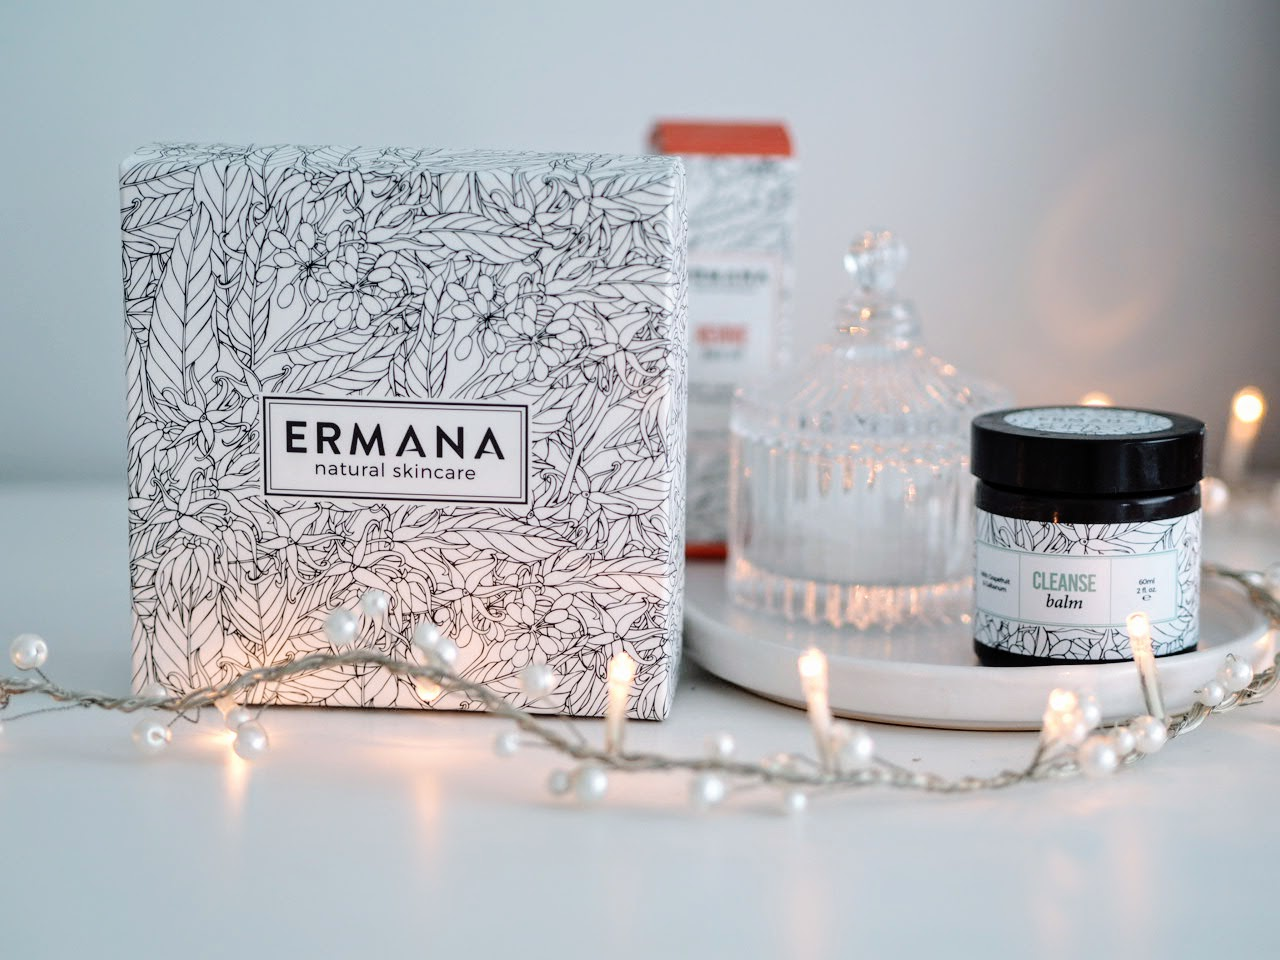 Ermana Natural Skincare { Mothers Day Gift Idea }